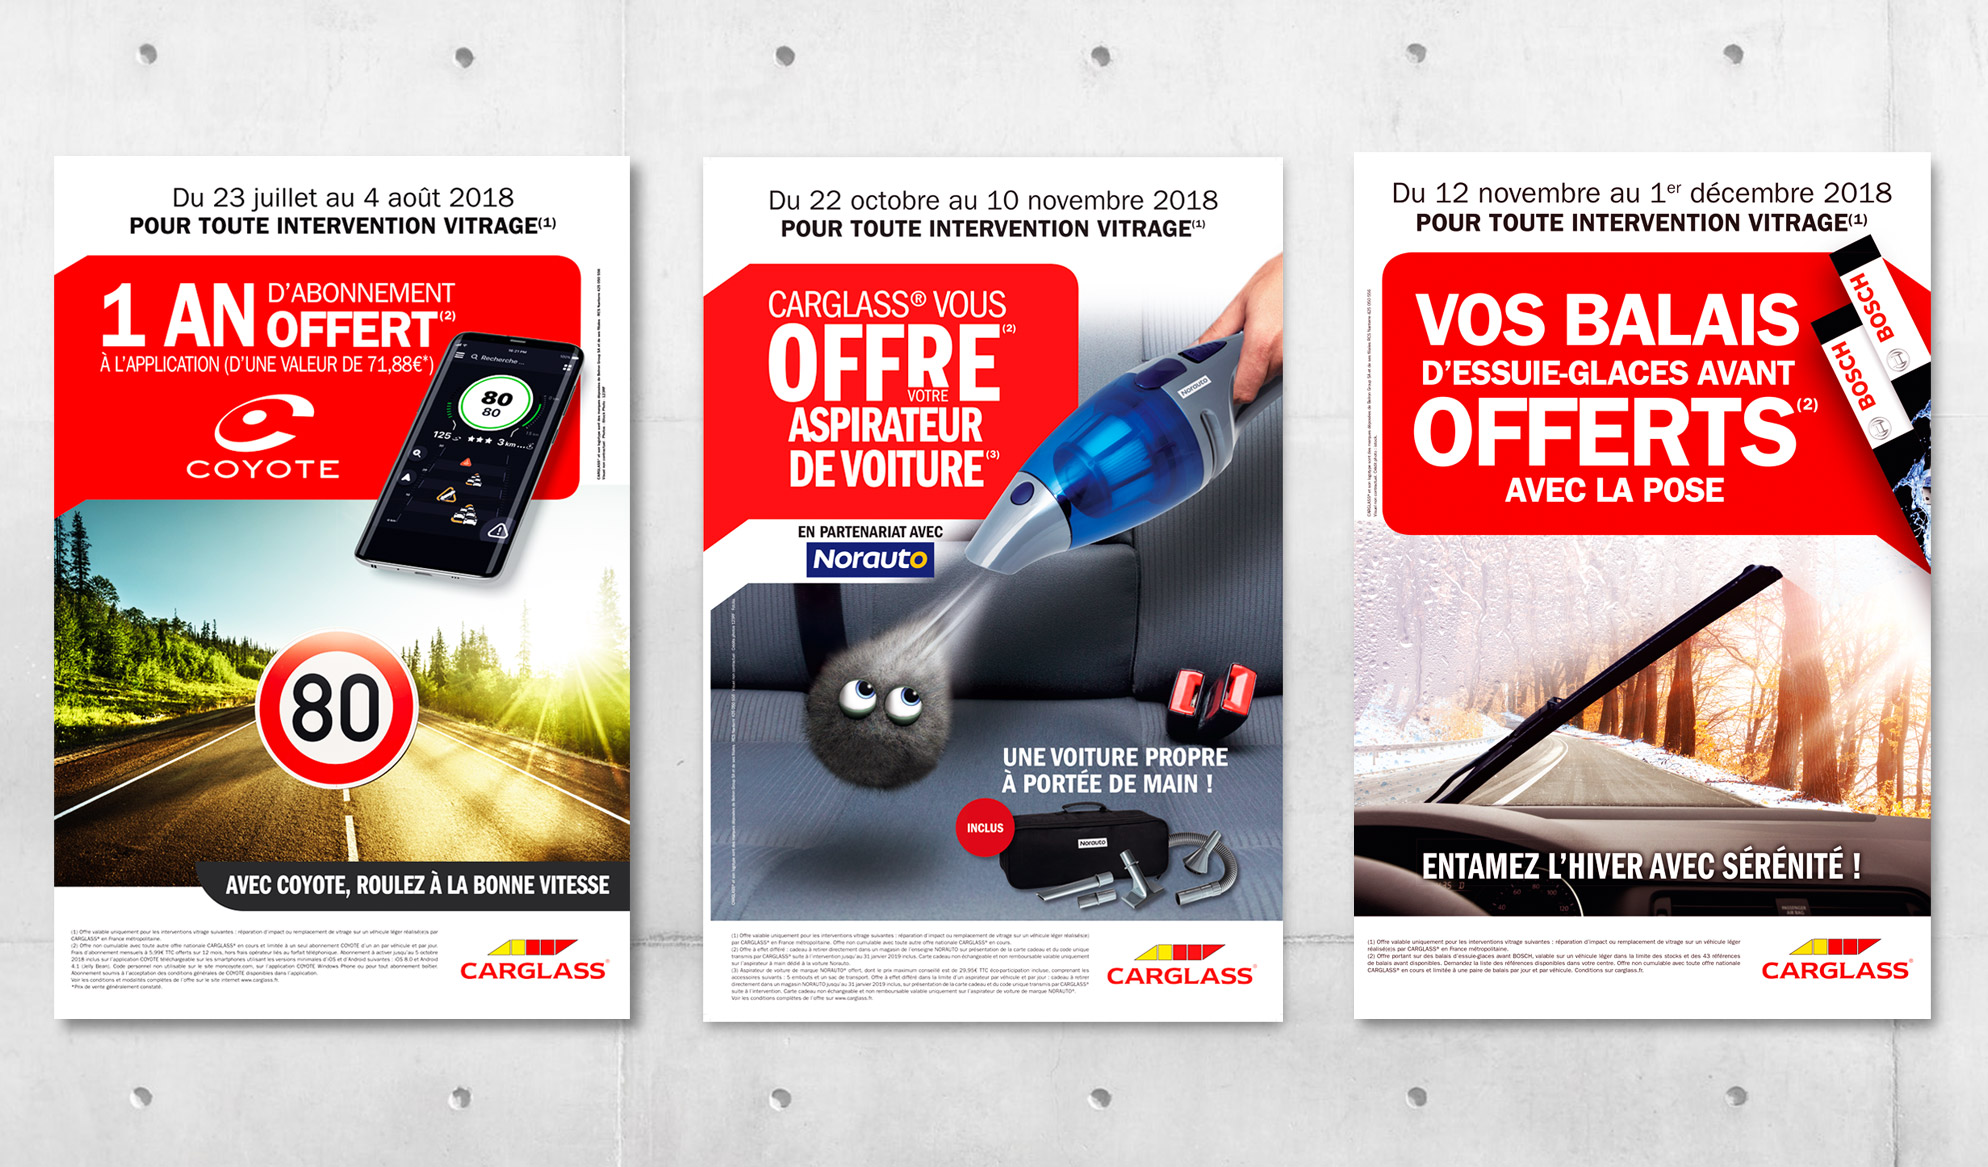 Image affiche Carglass